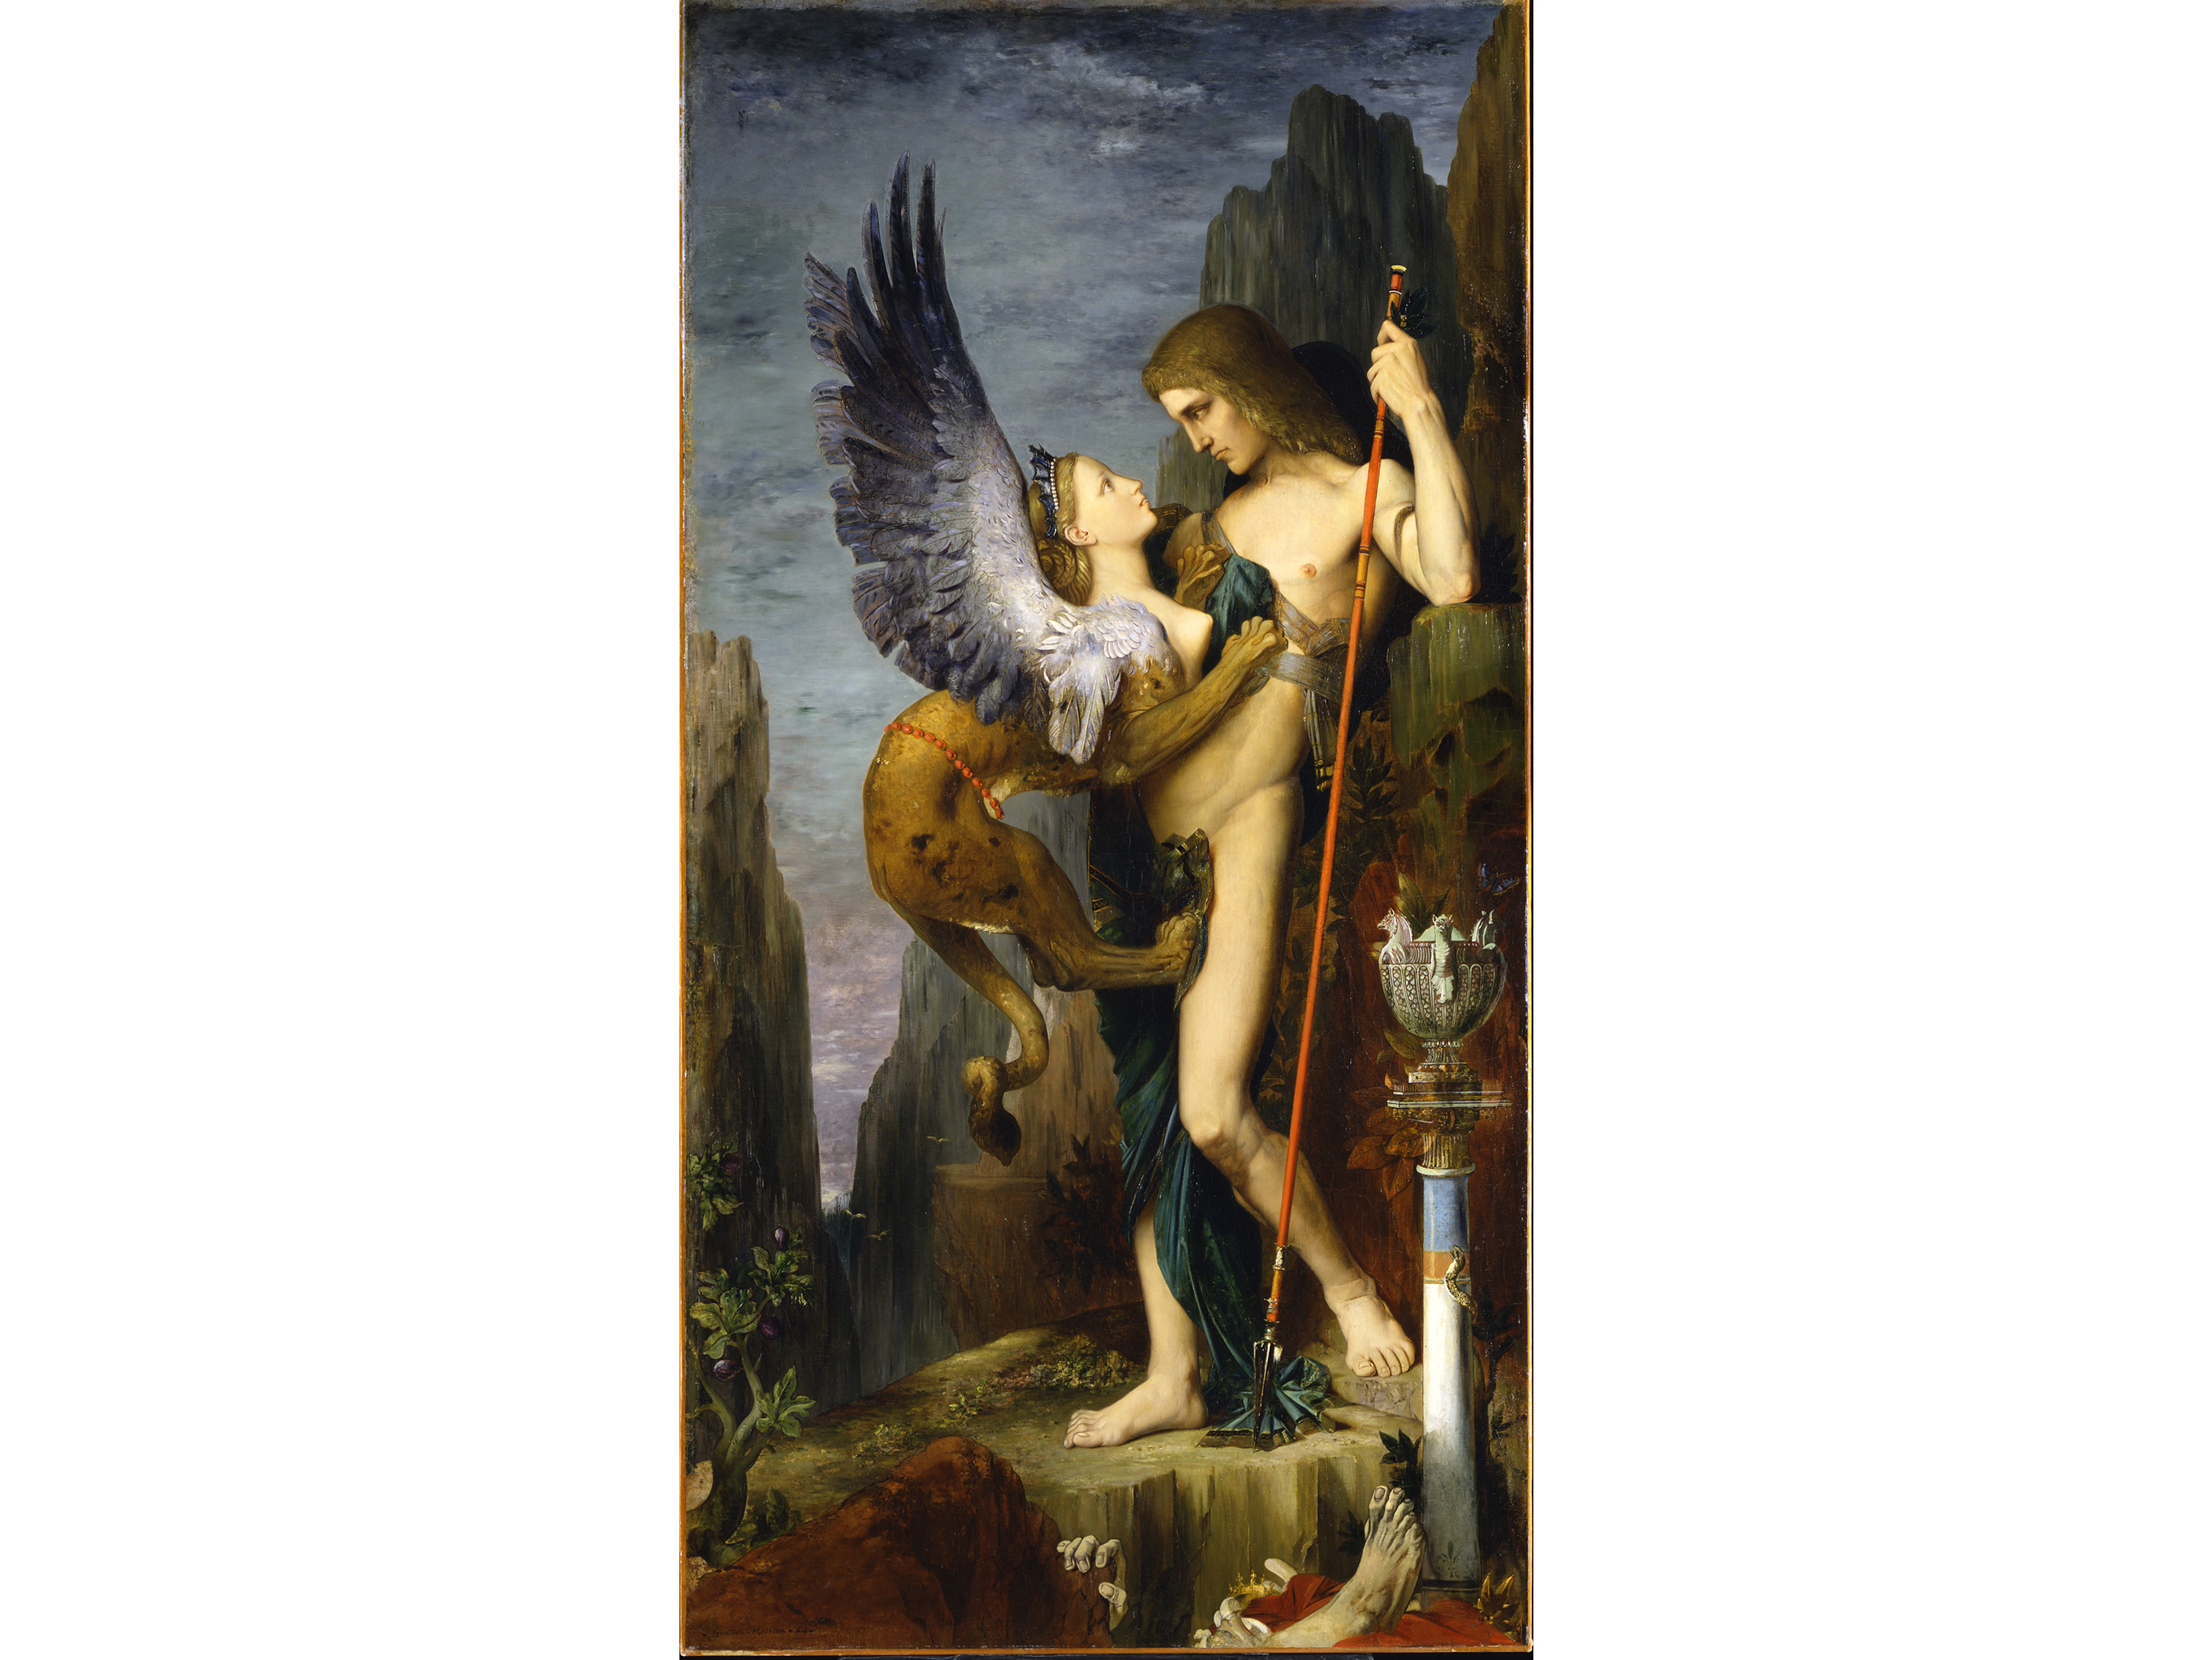 Oedipus and the Sphinx (1864), Gustave Moreau